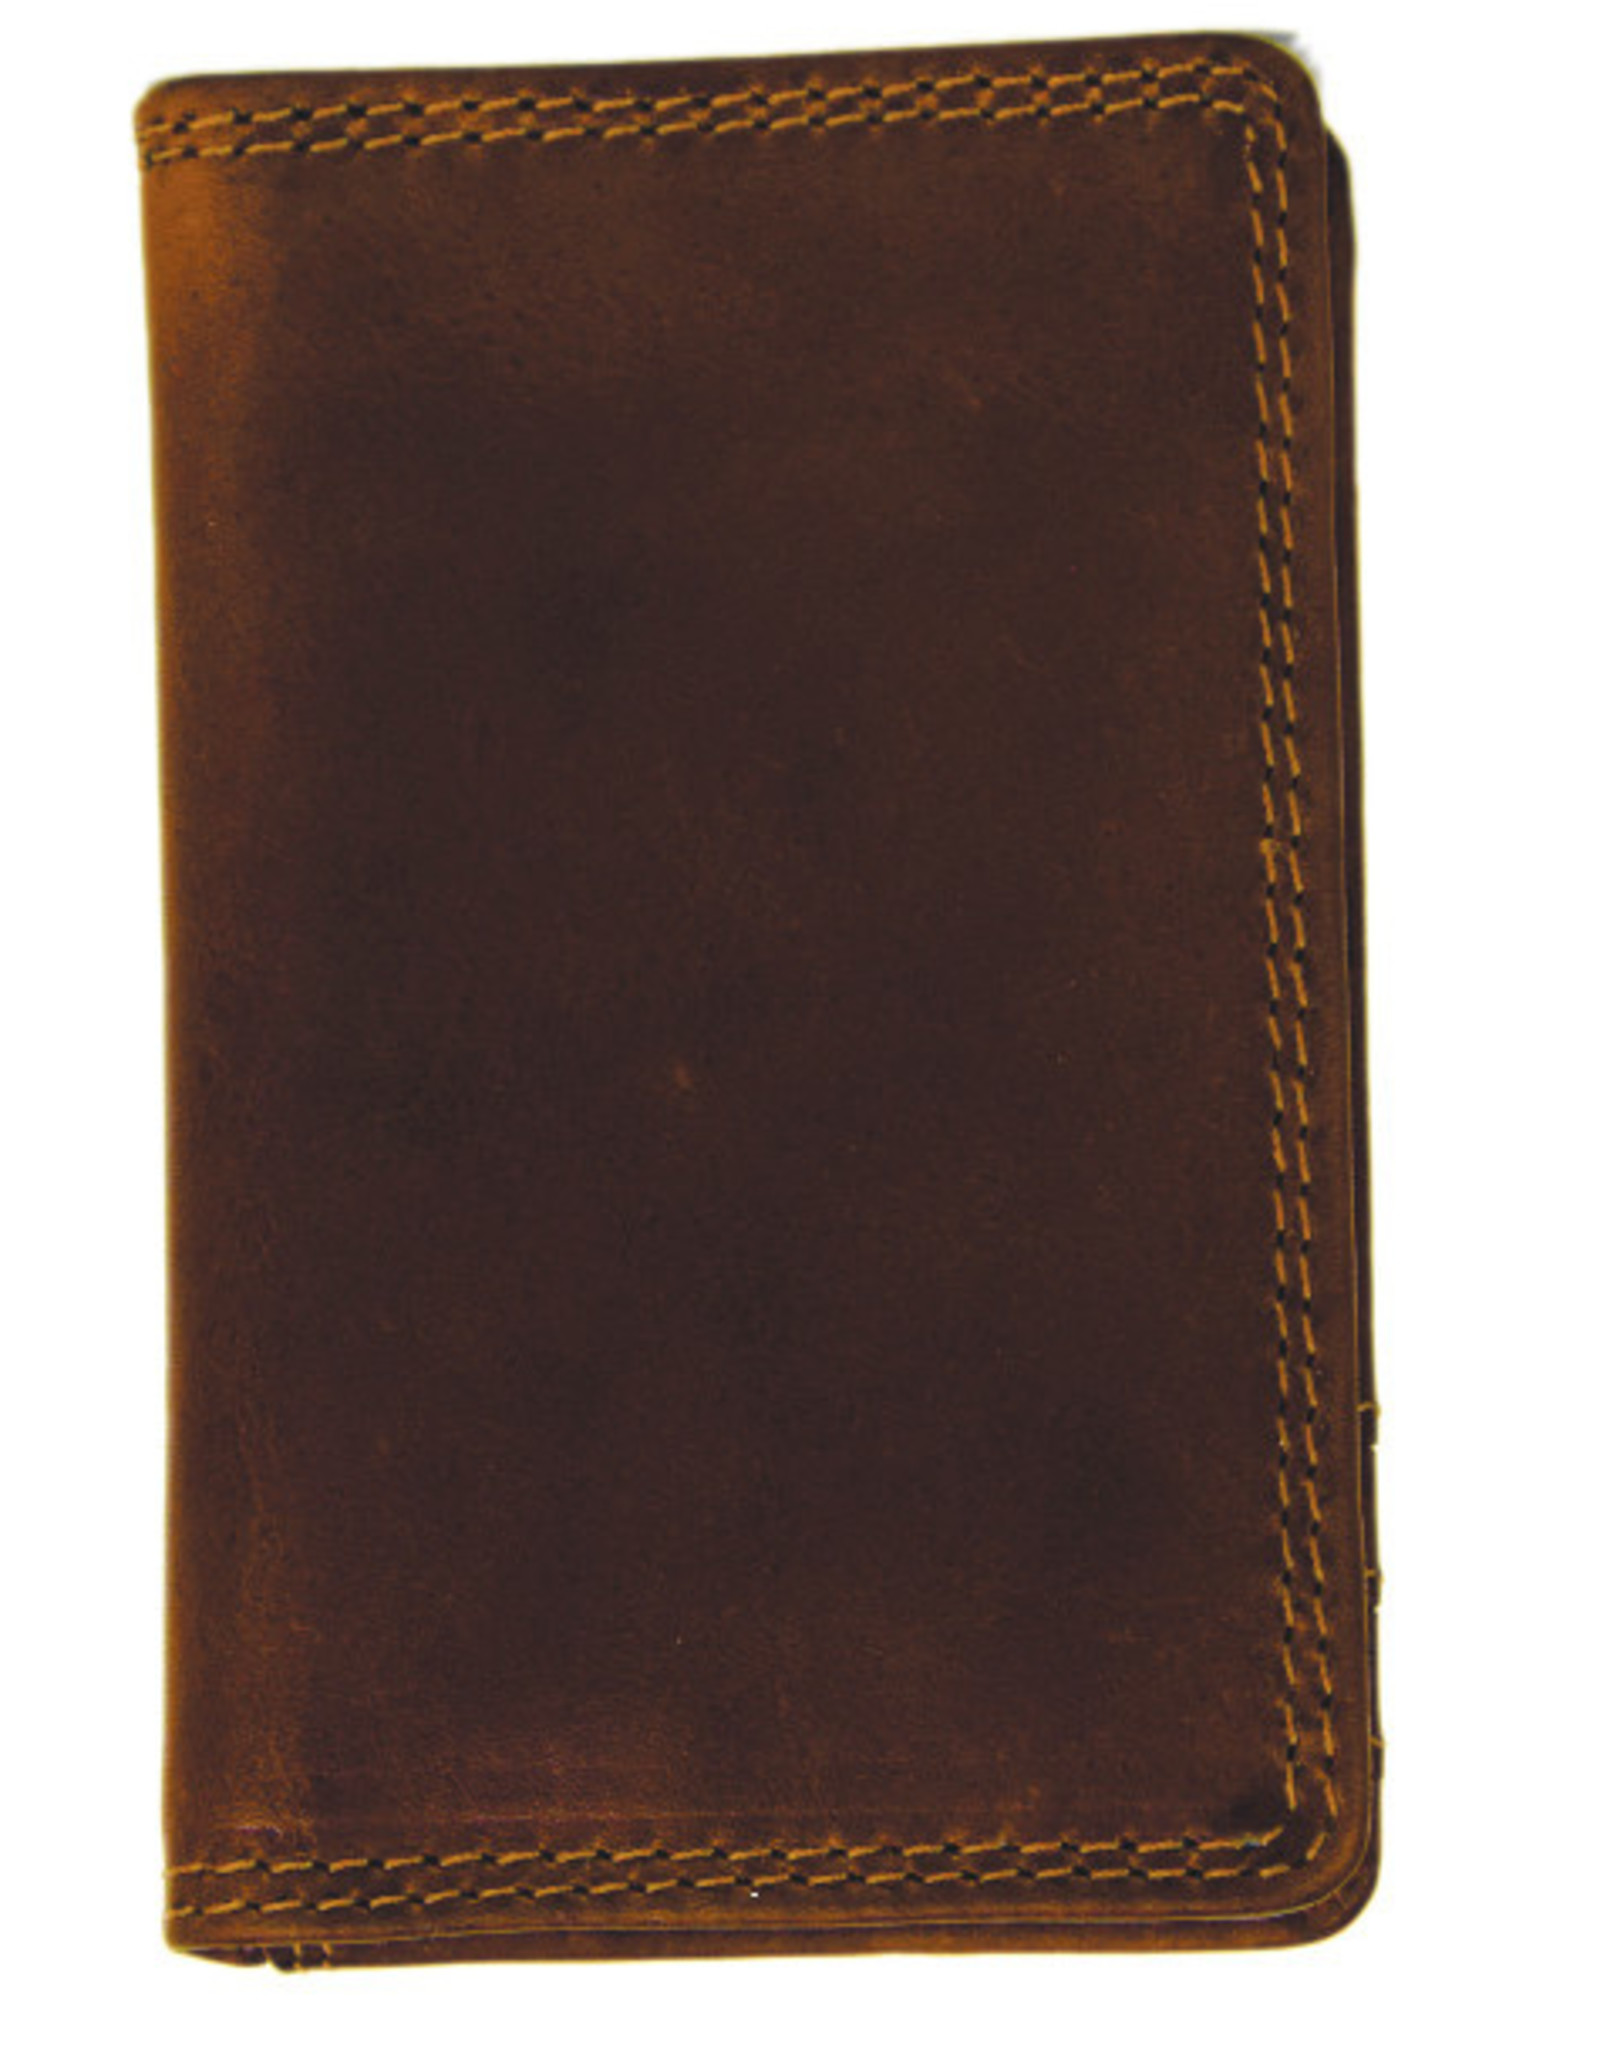 "Rugged Earth Rugged Earth Wallet 990019 Brown W 3""*H4.25""*D 3/8"""